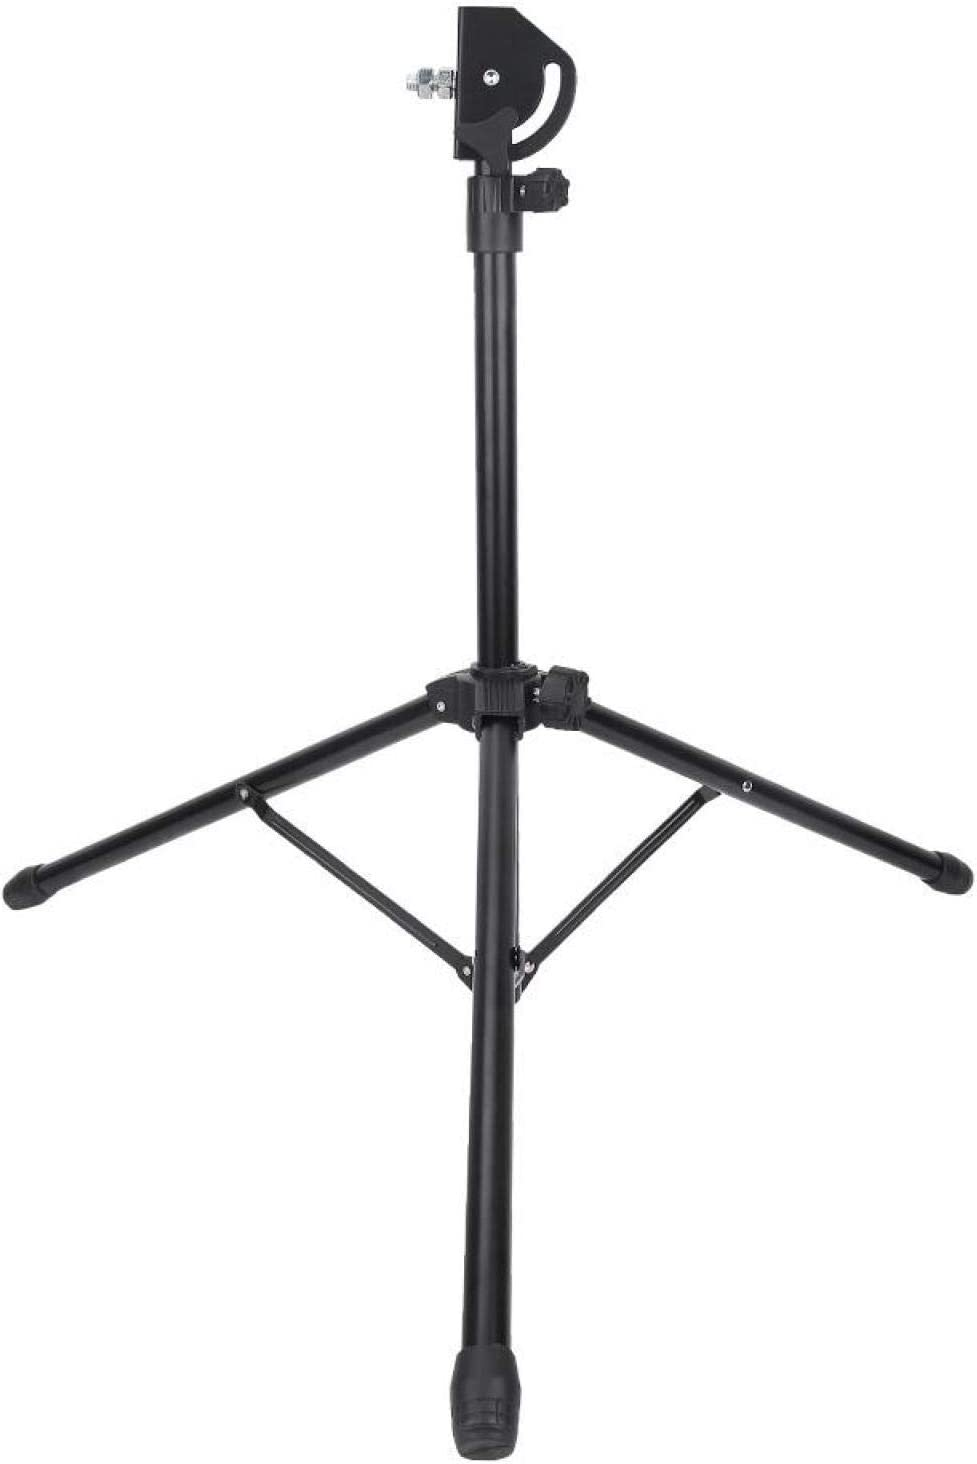 Dumb Drum Stand Adjustable Shelf Max 89% OFF Training Exercise Support Fashion For